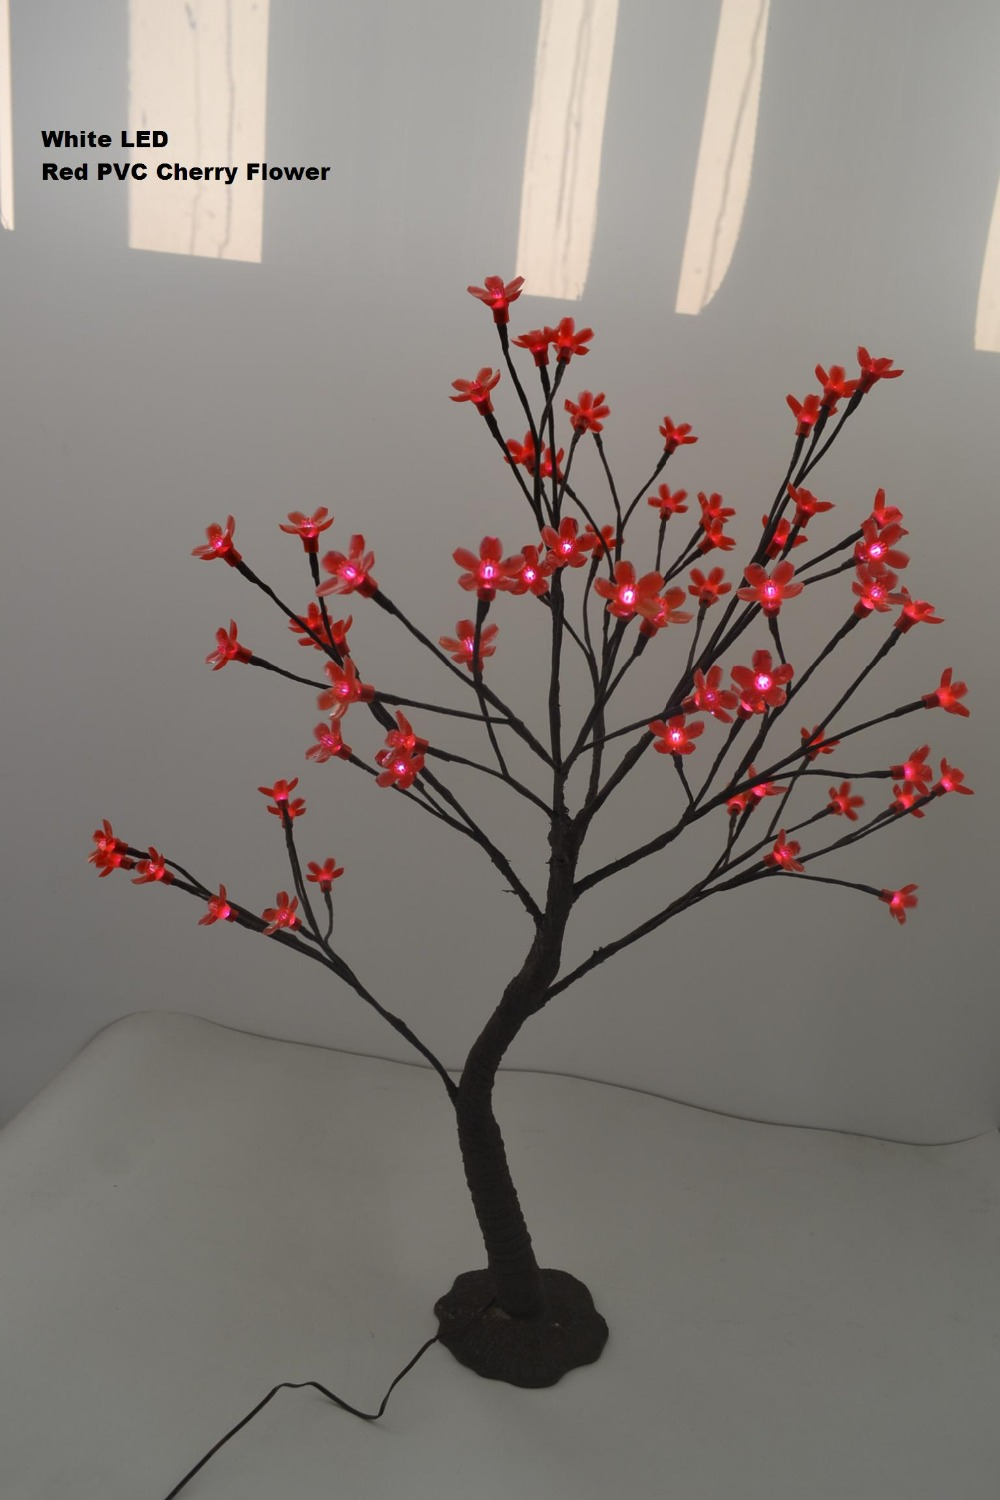 64 PCs White LED plus Colorful PVC Cherry Blossom Flower Tree in 70cm standing cherry tree with Base and nature trunk treatment